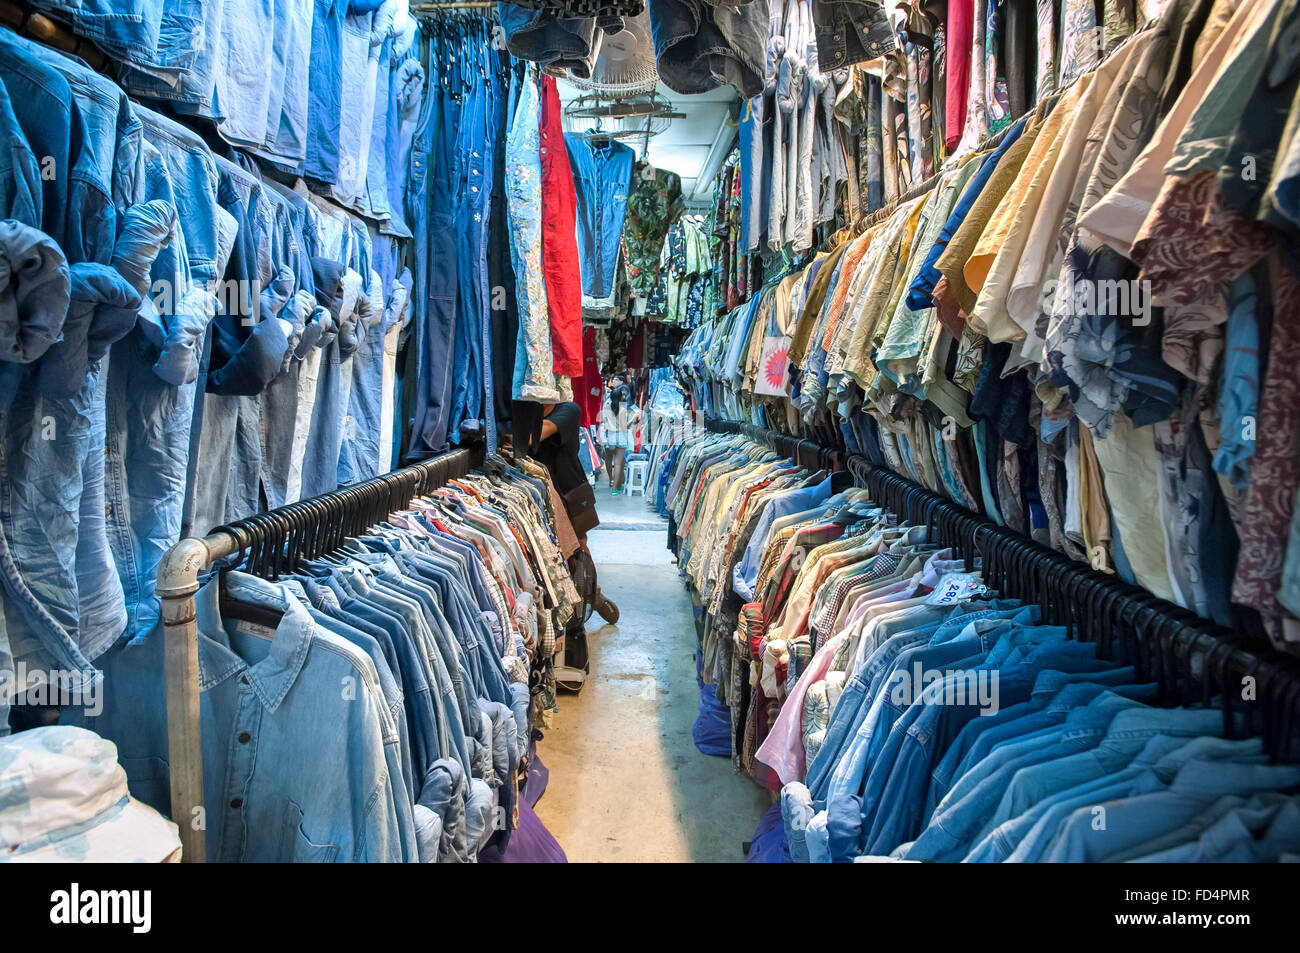 Vintage shirts at Chatuchak Weekend Market, Bangkok - Stock Image